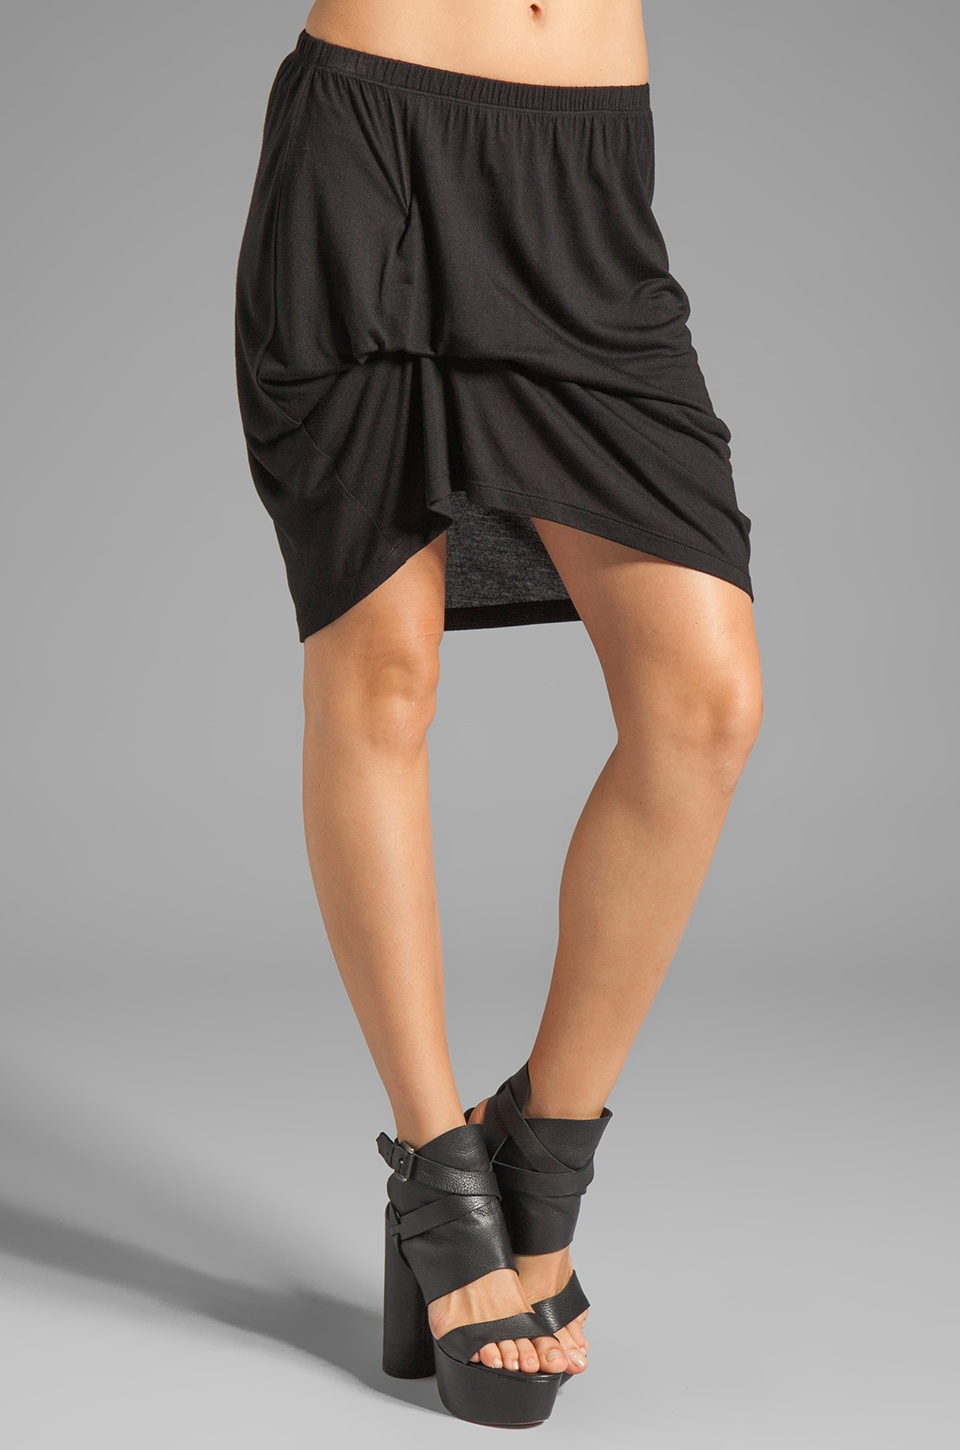 Riller & Fount Alicia Pinched Front Mini Skirt in Black